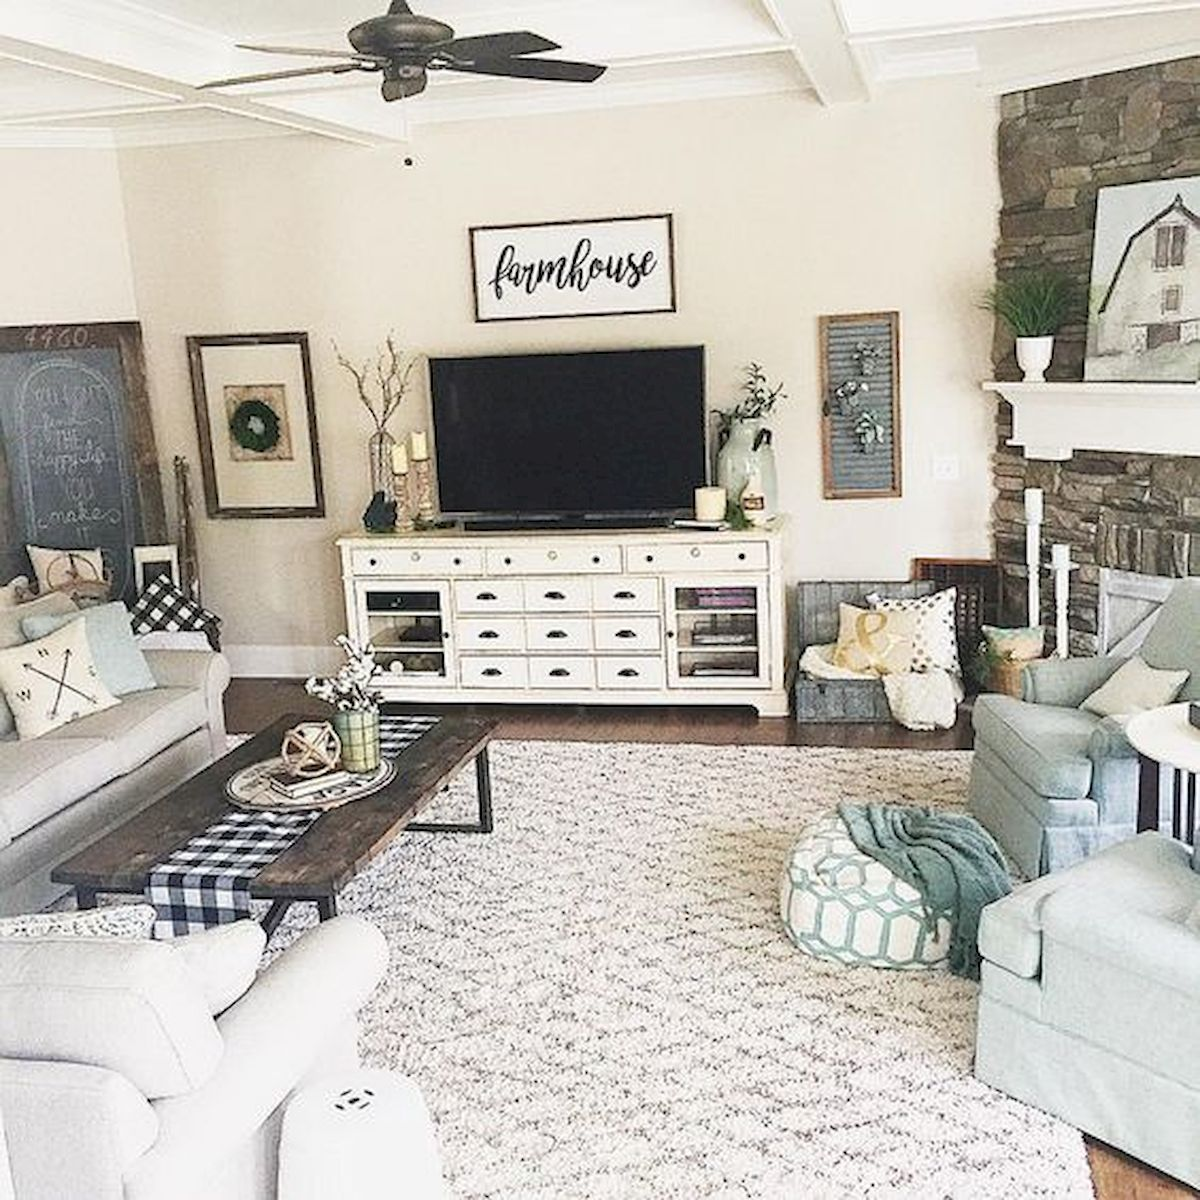 Adorable 33 Best Farmhouse Living Room Tv Stand Design Ideas Https Coachdecor Com 33 Best Farm Farm House Living Room Living Room Tv Stand Rustic Living Room